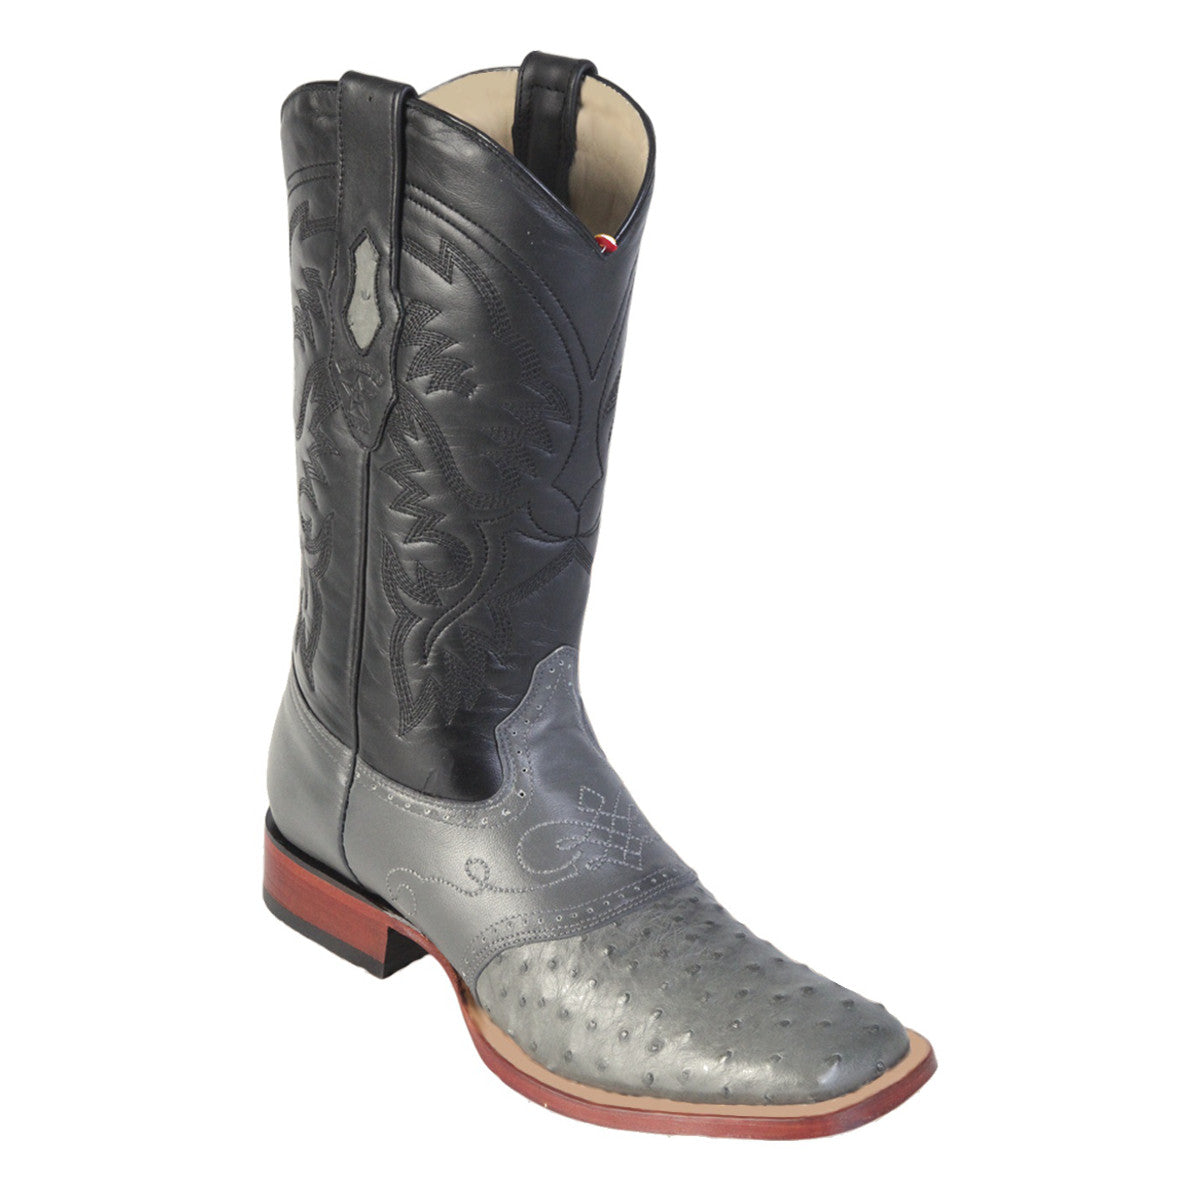 Los Altos Boots H82 Wide Square Toe Ostrich - Gray